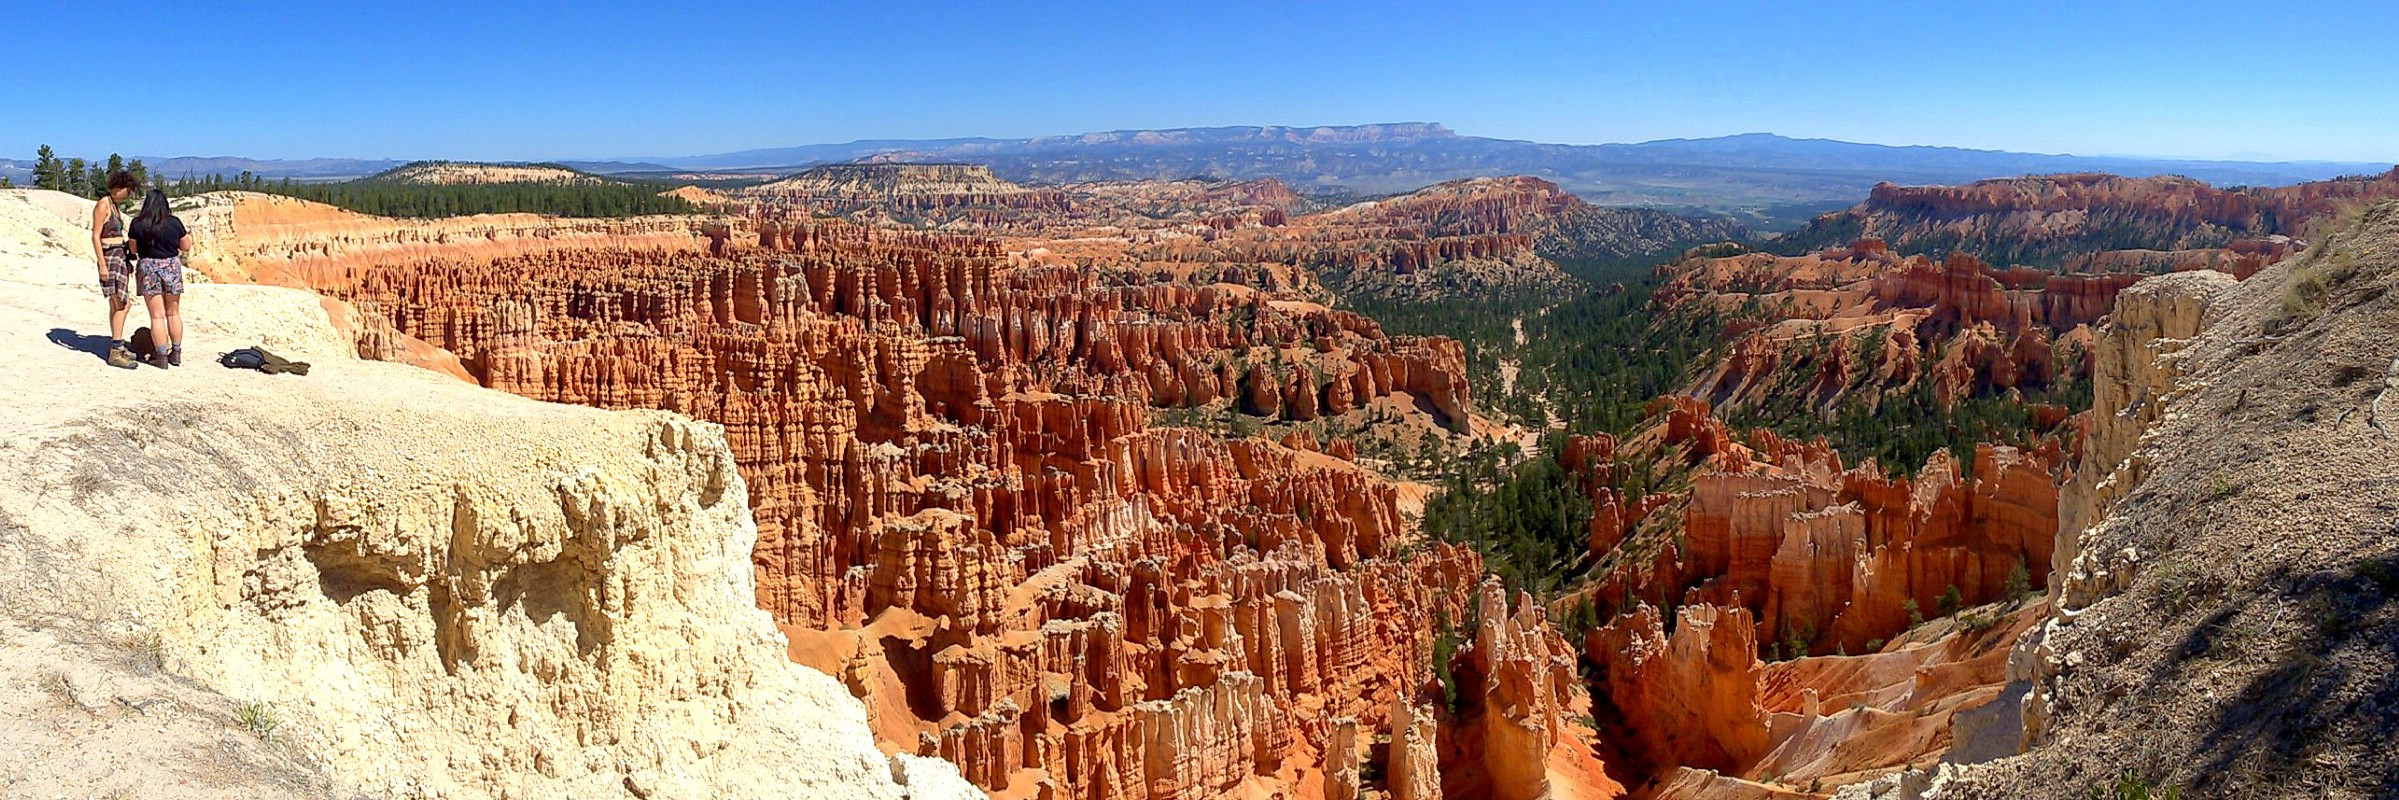 Overlooking the Bryce Amphitheater in Bryce Canyon National Park, southern Utah, USA. September 8, 2016.